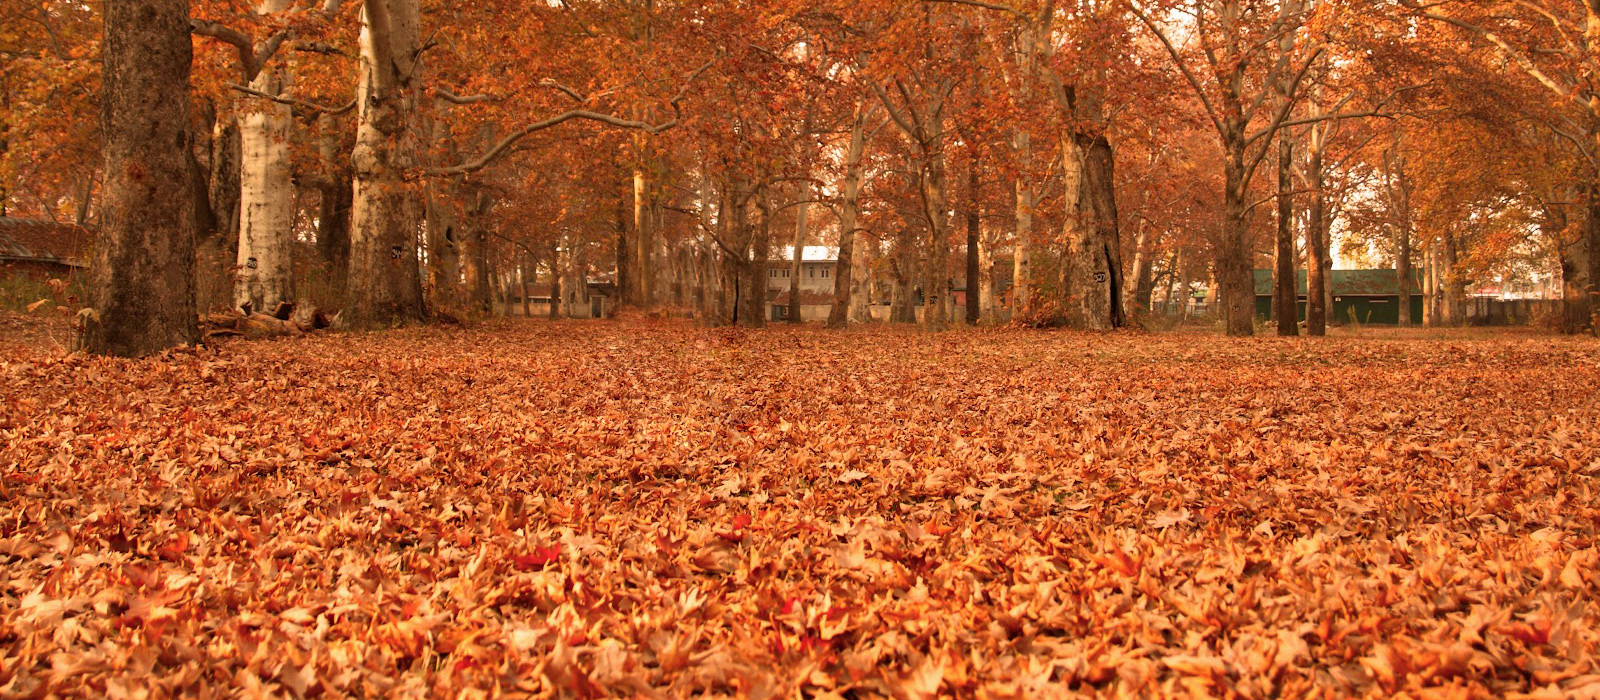 autumn season in kashmir